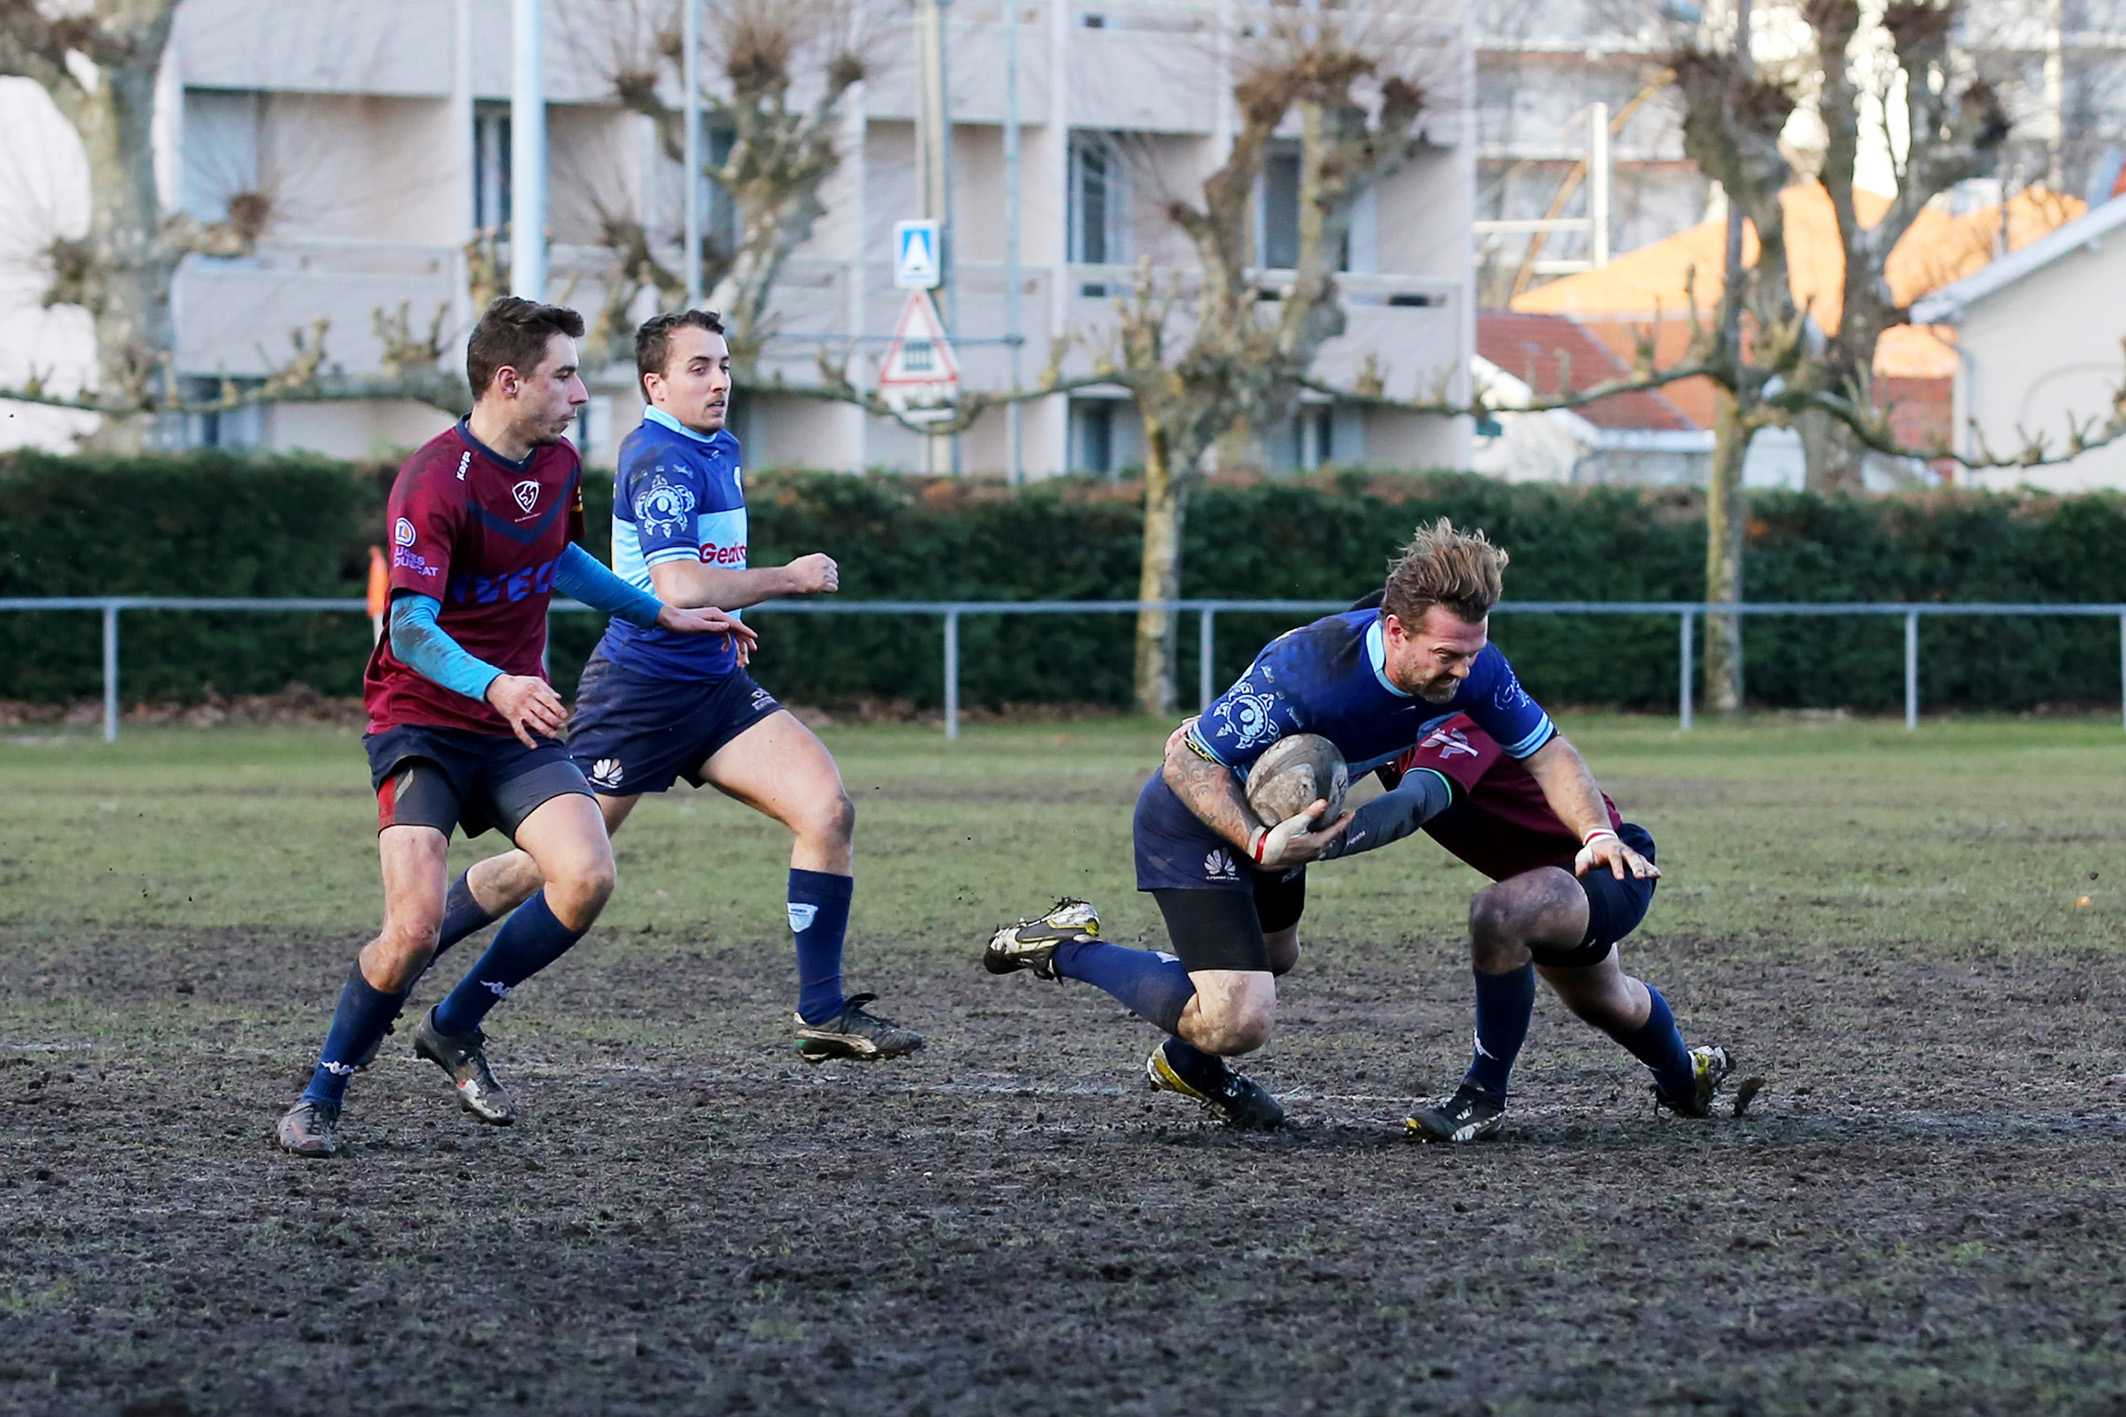 AS-LacanauRugby_25012015_(c)JeromeAUGEREAU-1Moment1Image